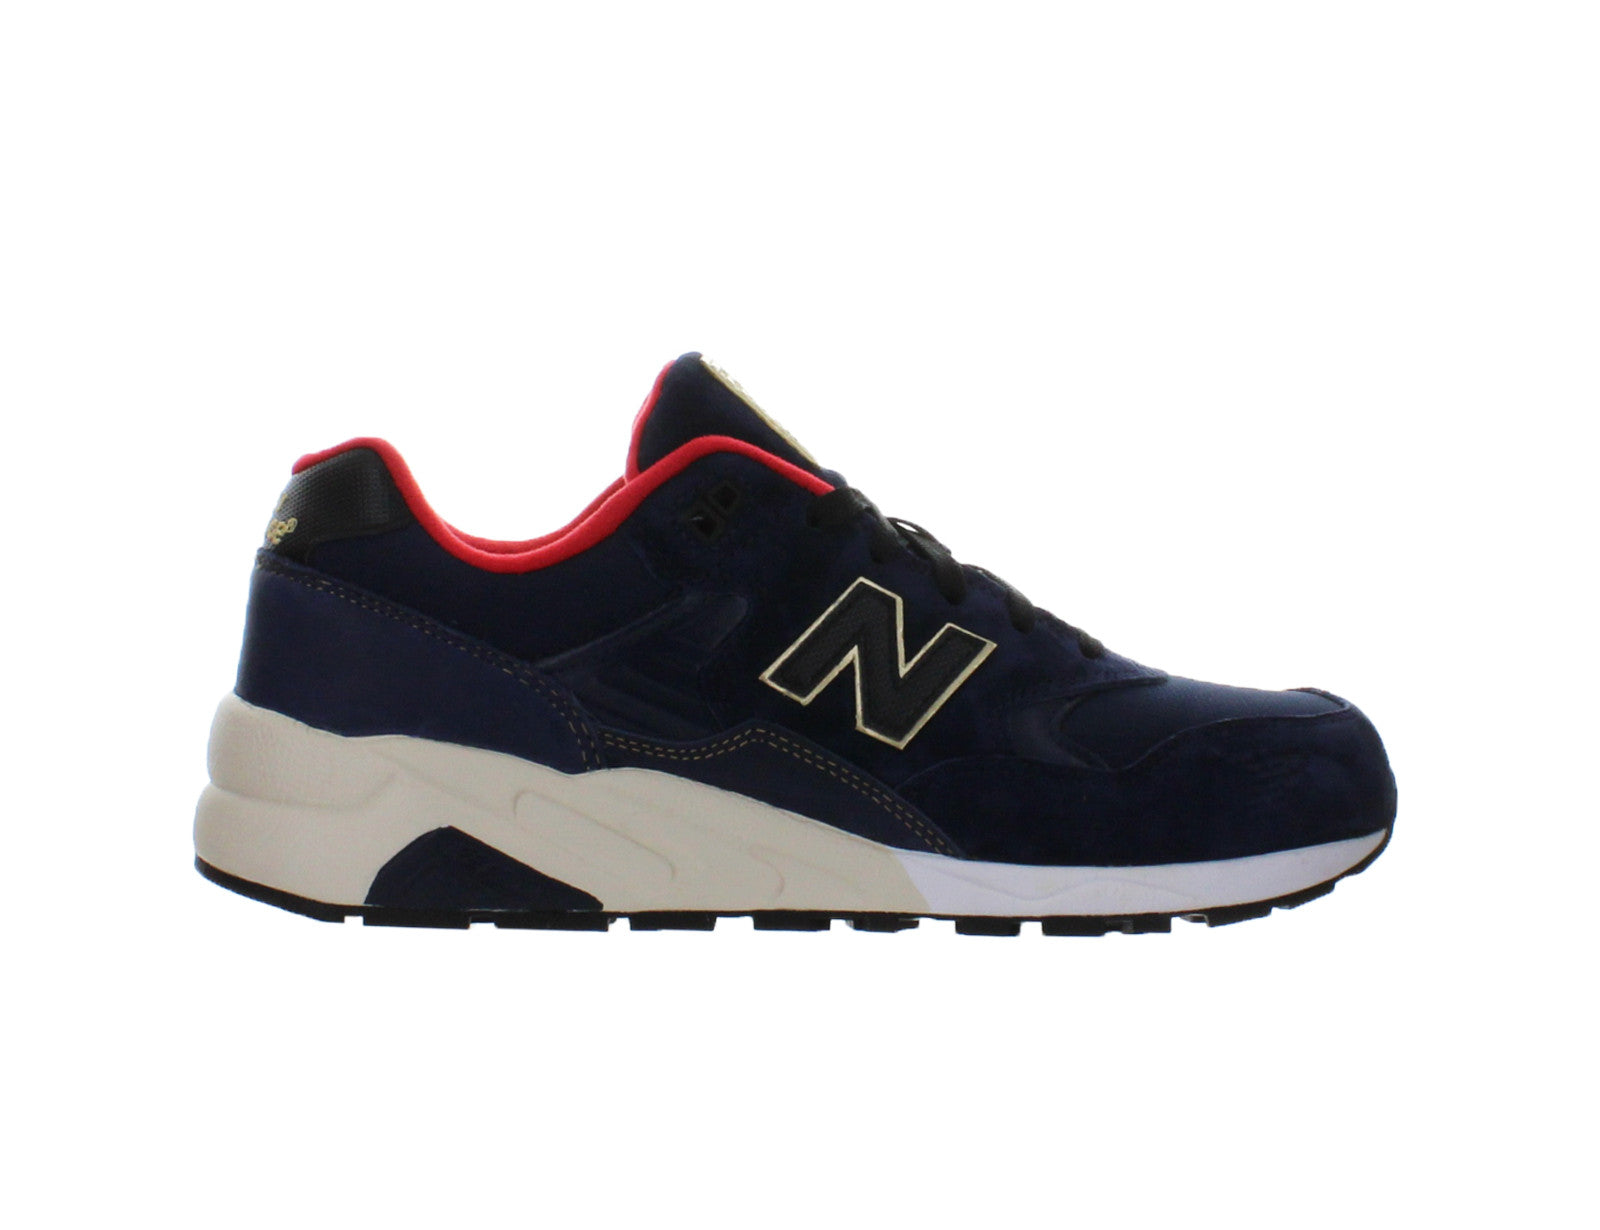 cheap for discount 06858 da3a2 Details about Mens New Balance 580 Elite Limited Edition Navy Black Gold  Red White MRT580AA